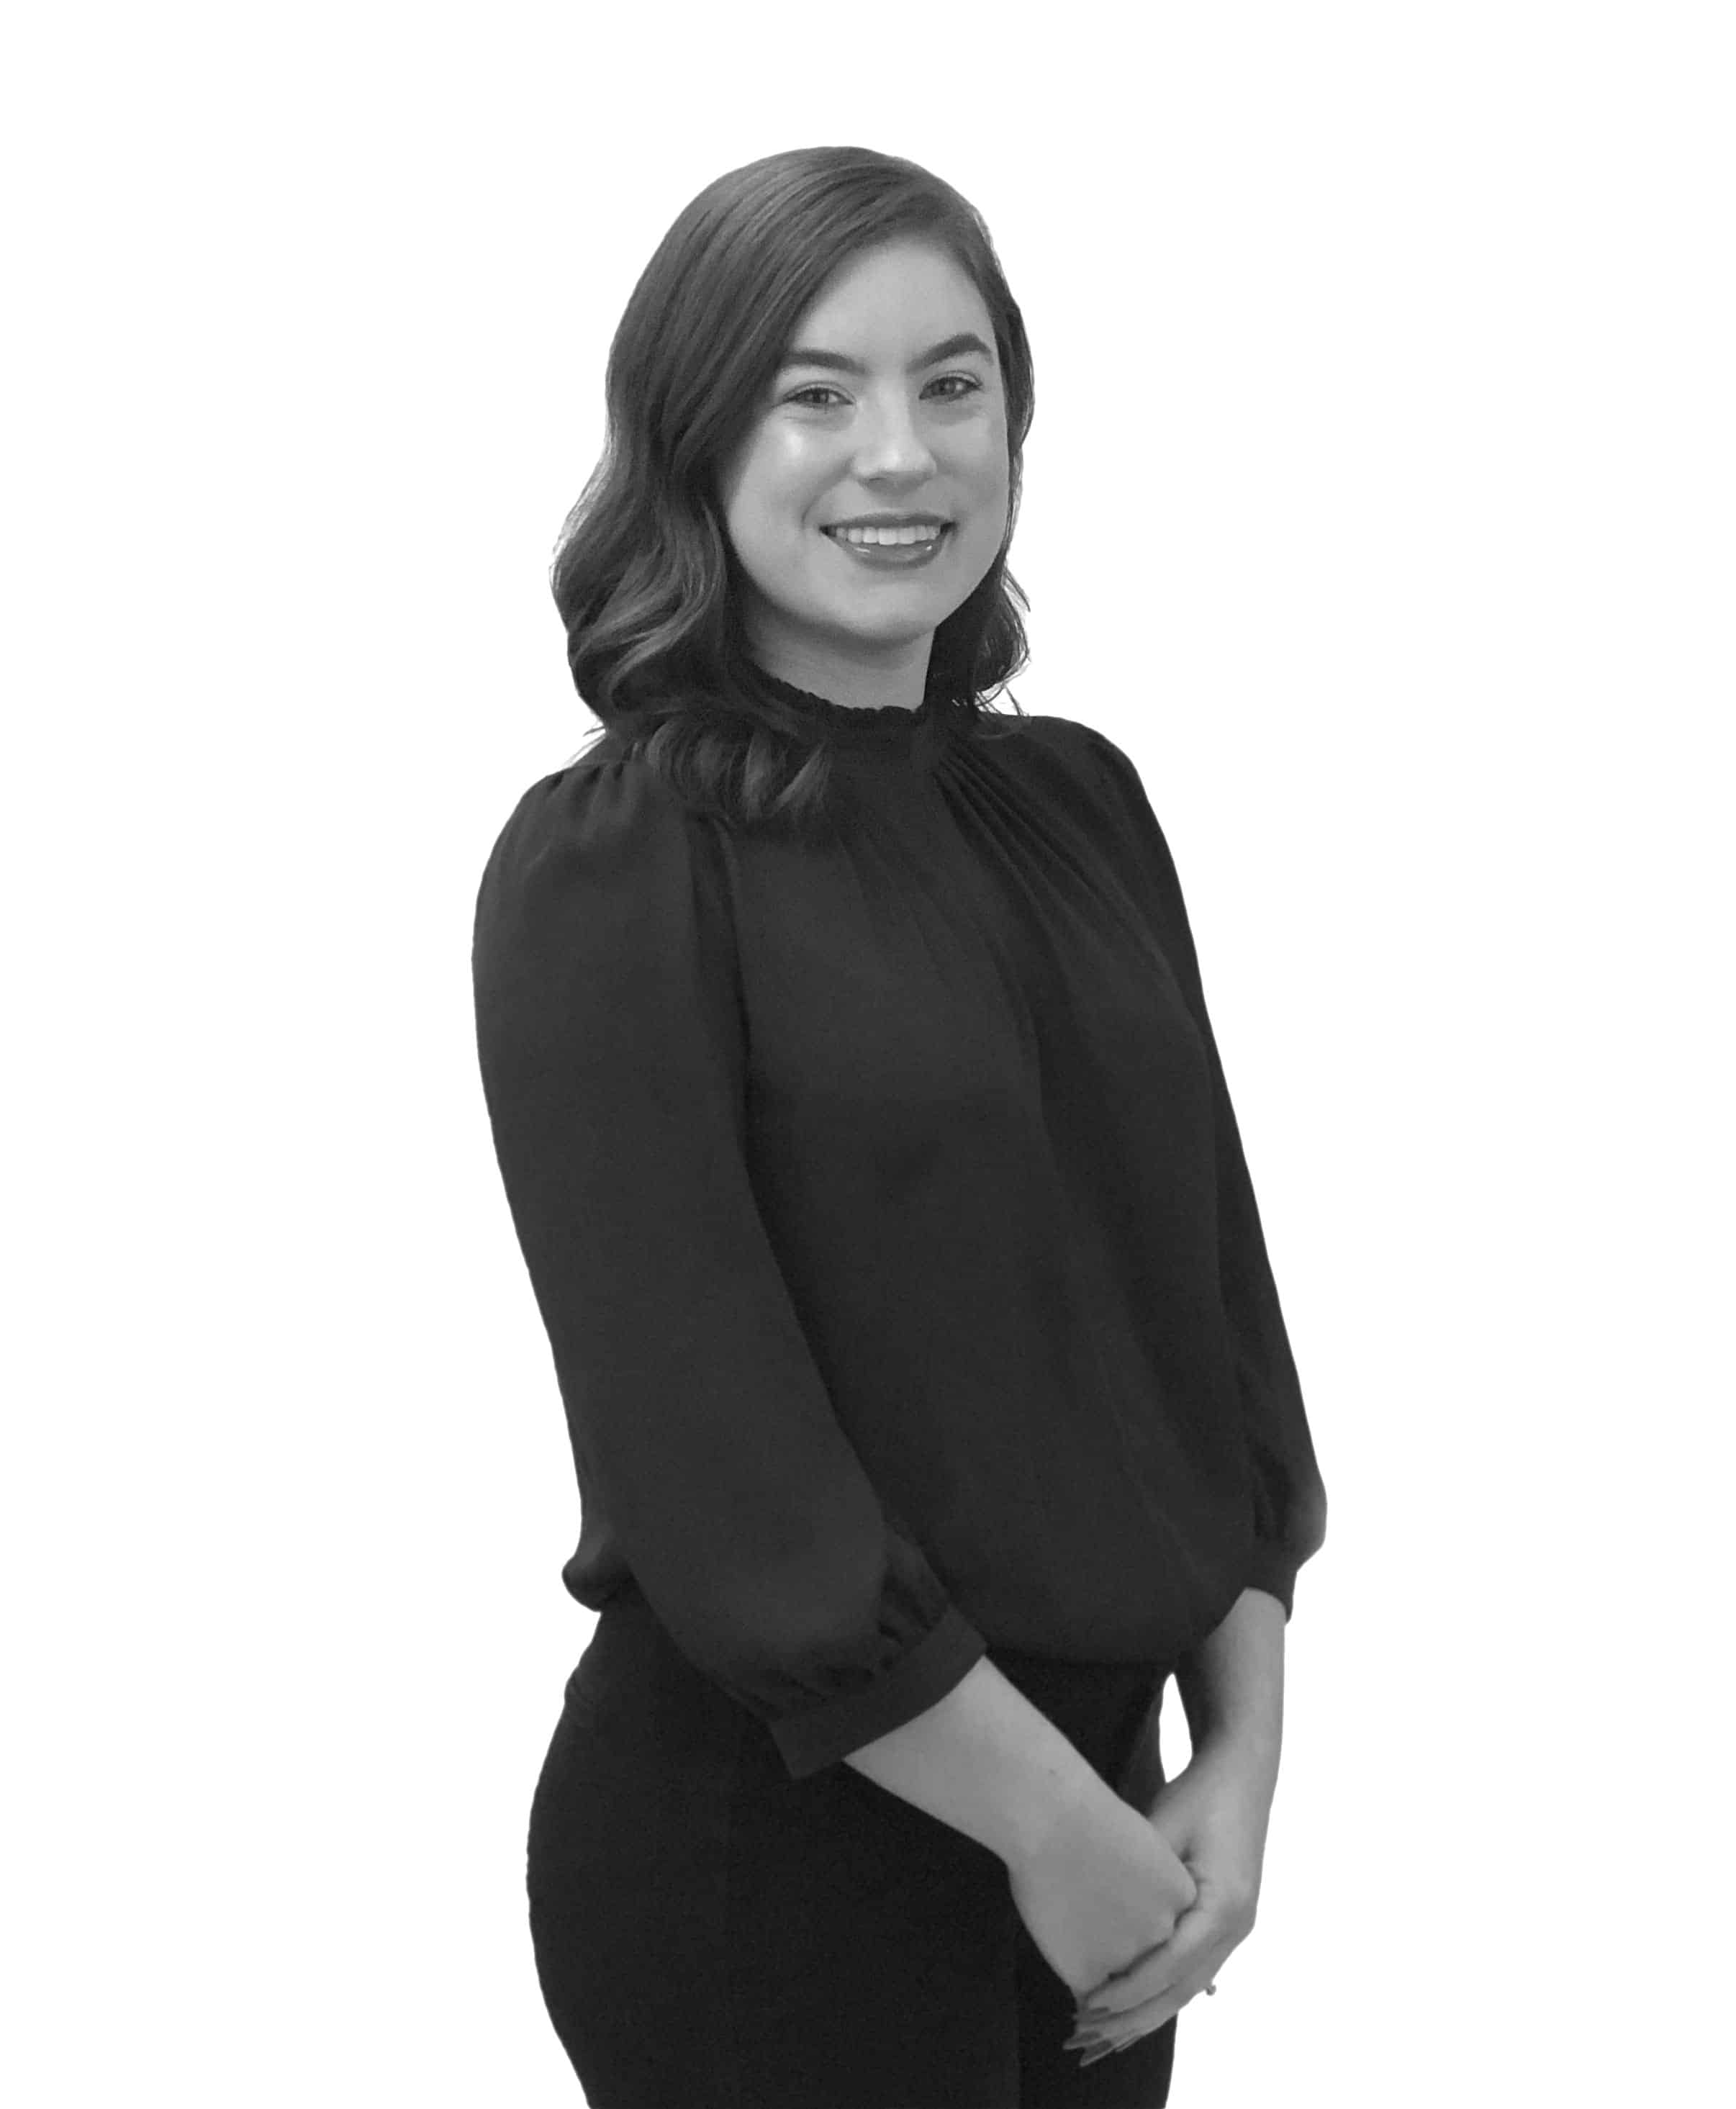 Family Law Paralegal Samantha Pettican